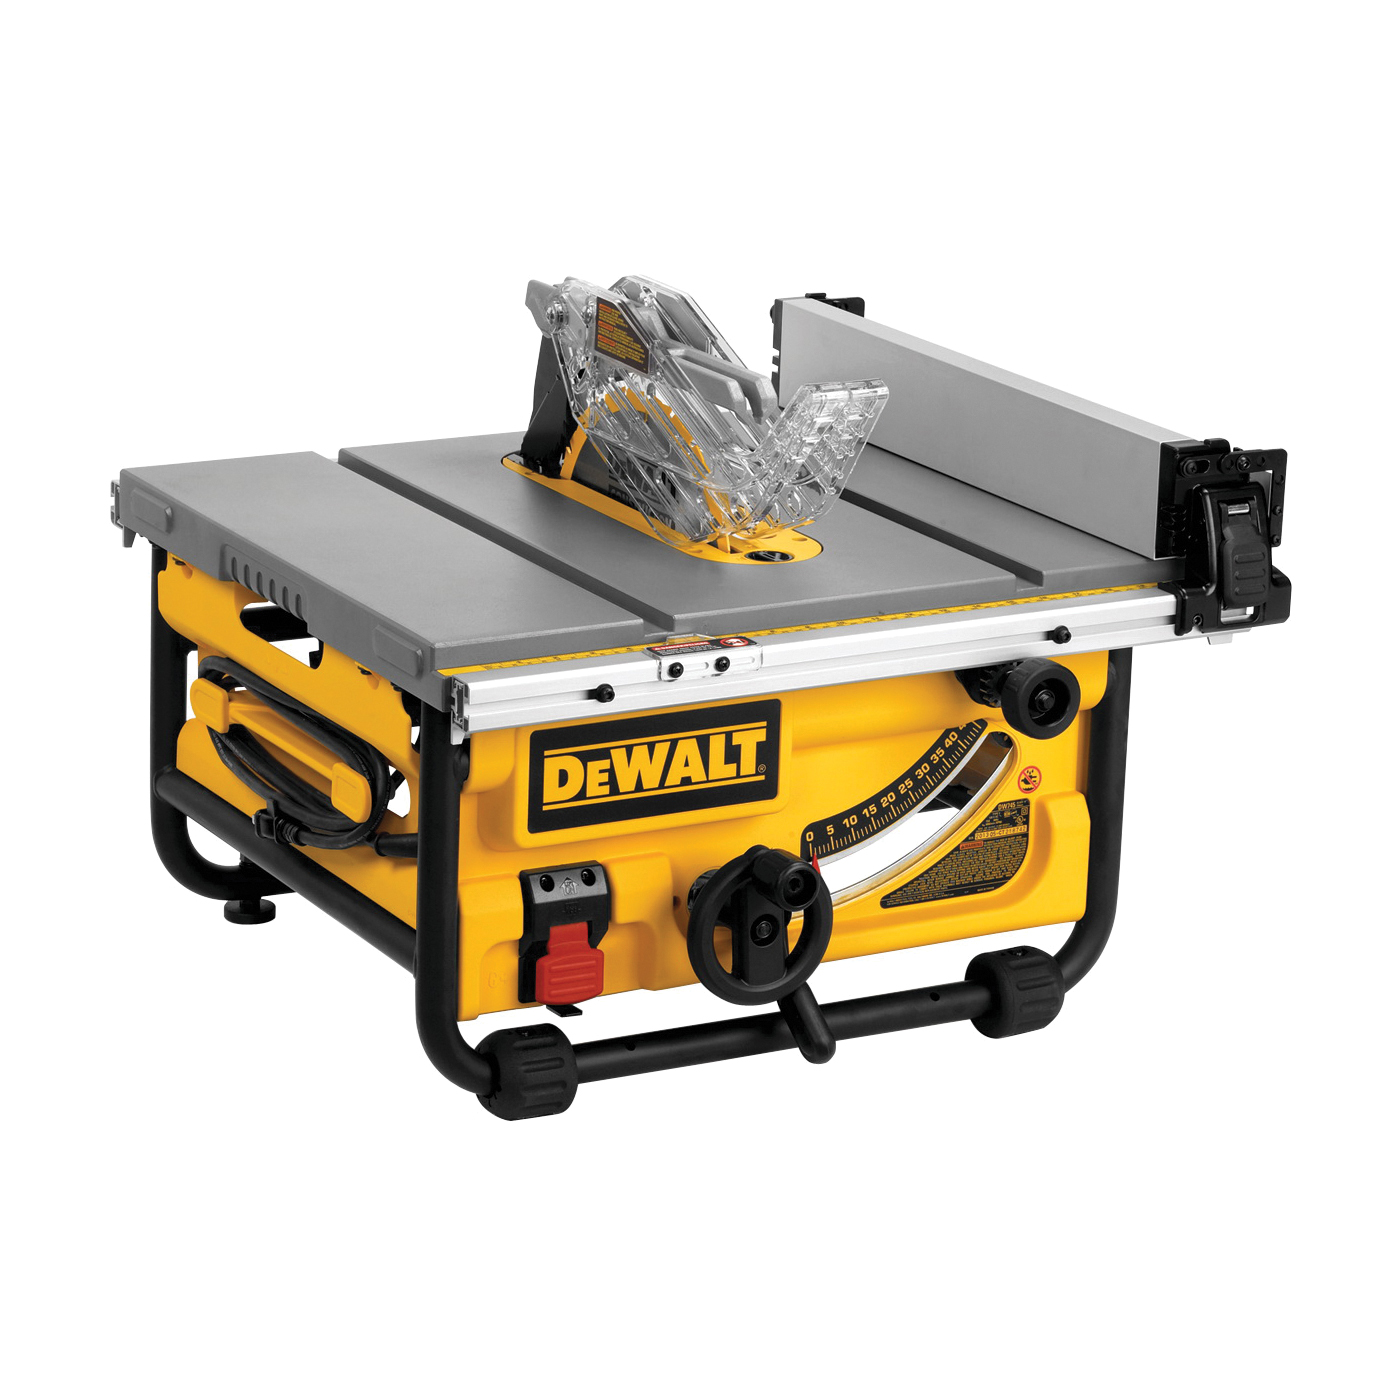 Picture of DeWALT DWE7480 Table Saw, 120 V, 15 A, 10 in Dia Blade, 5/8 in Arbor, 4800 rpm Speed